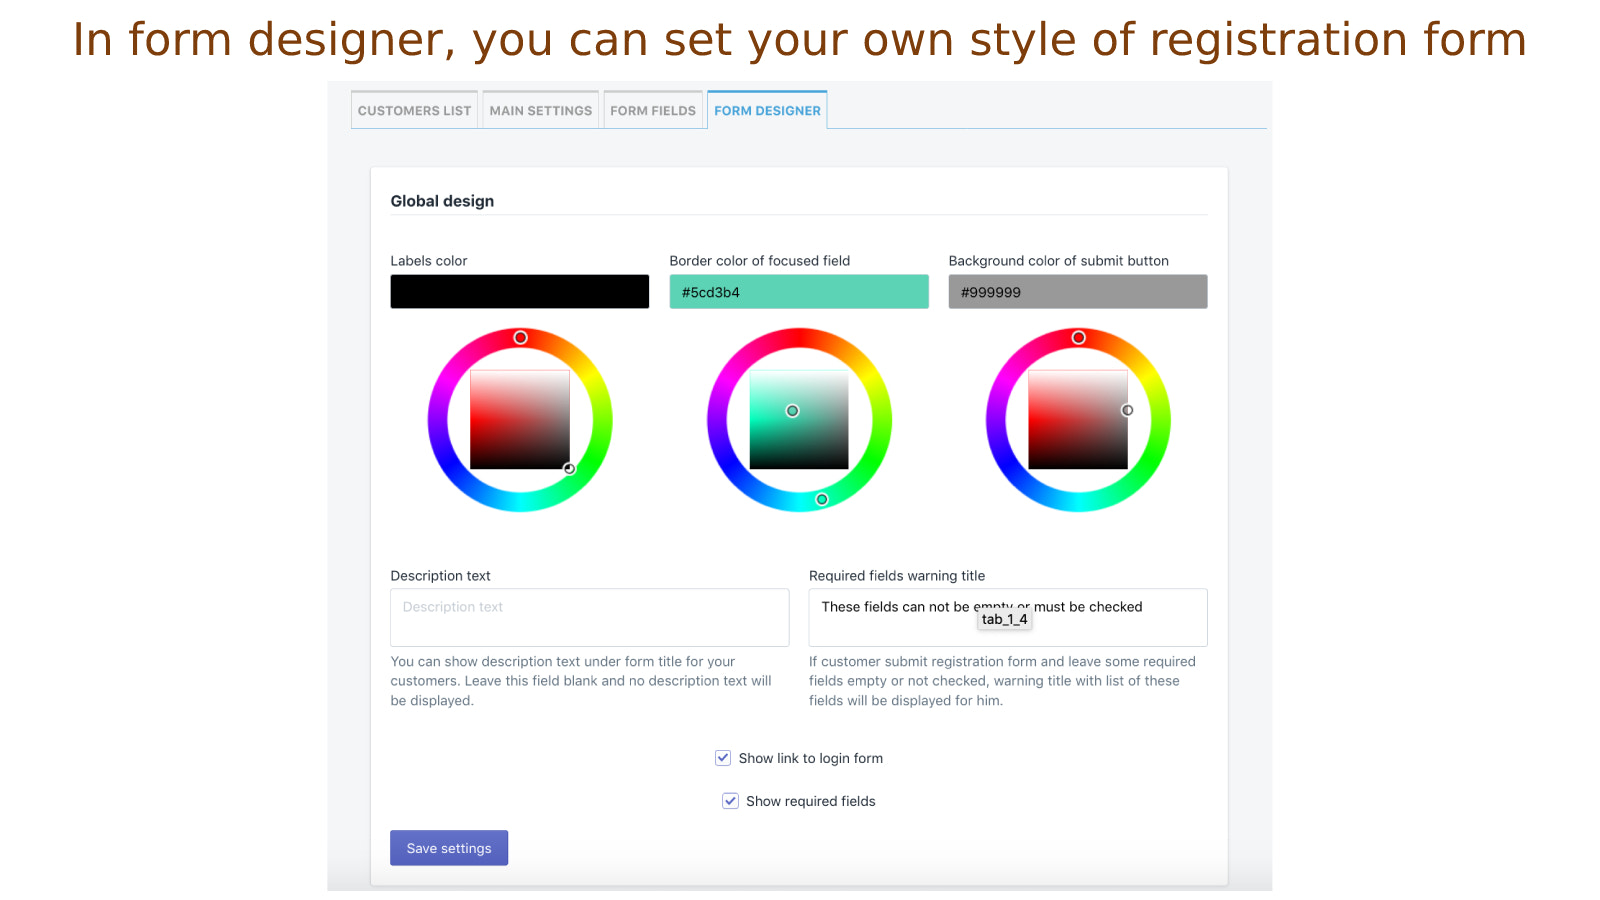 In form designer you can set your own style of registration form